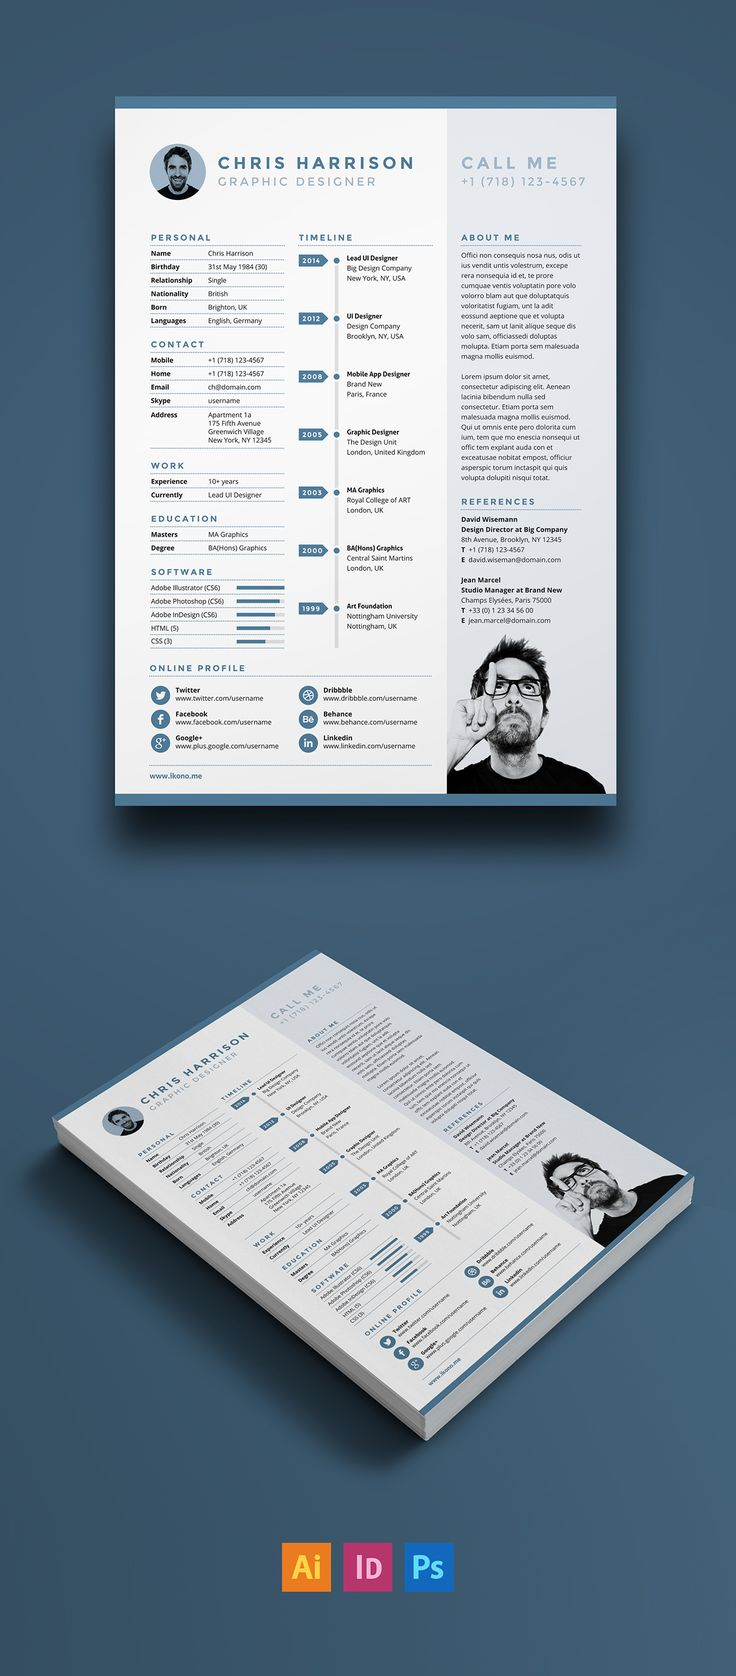 FREE RESUME Template Easy to edit and